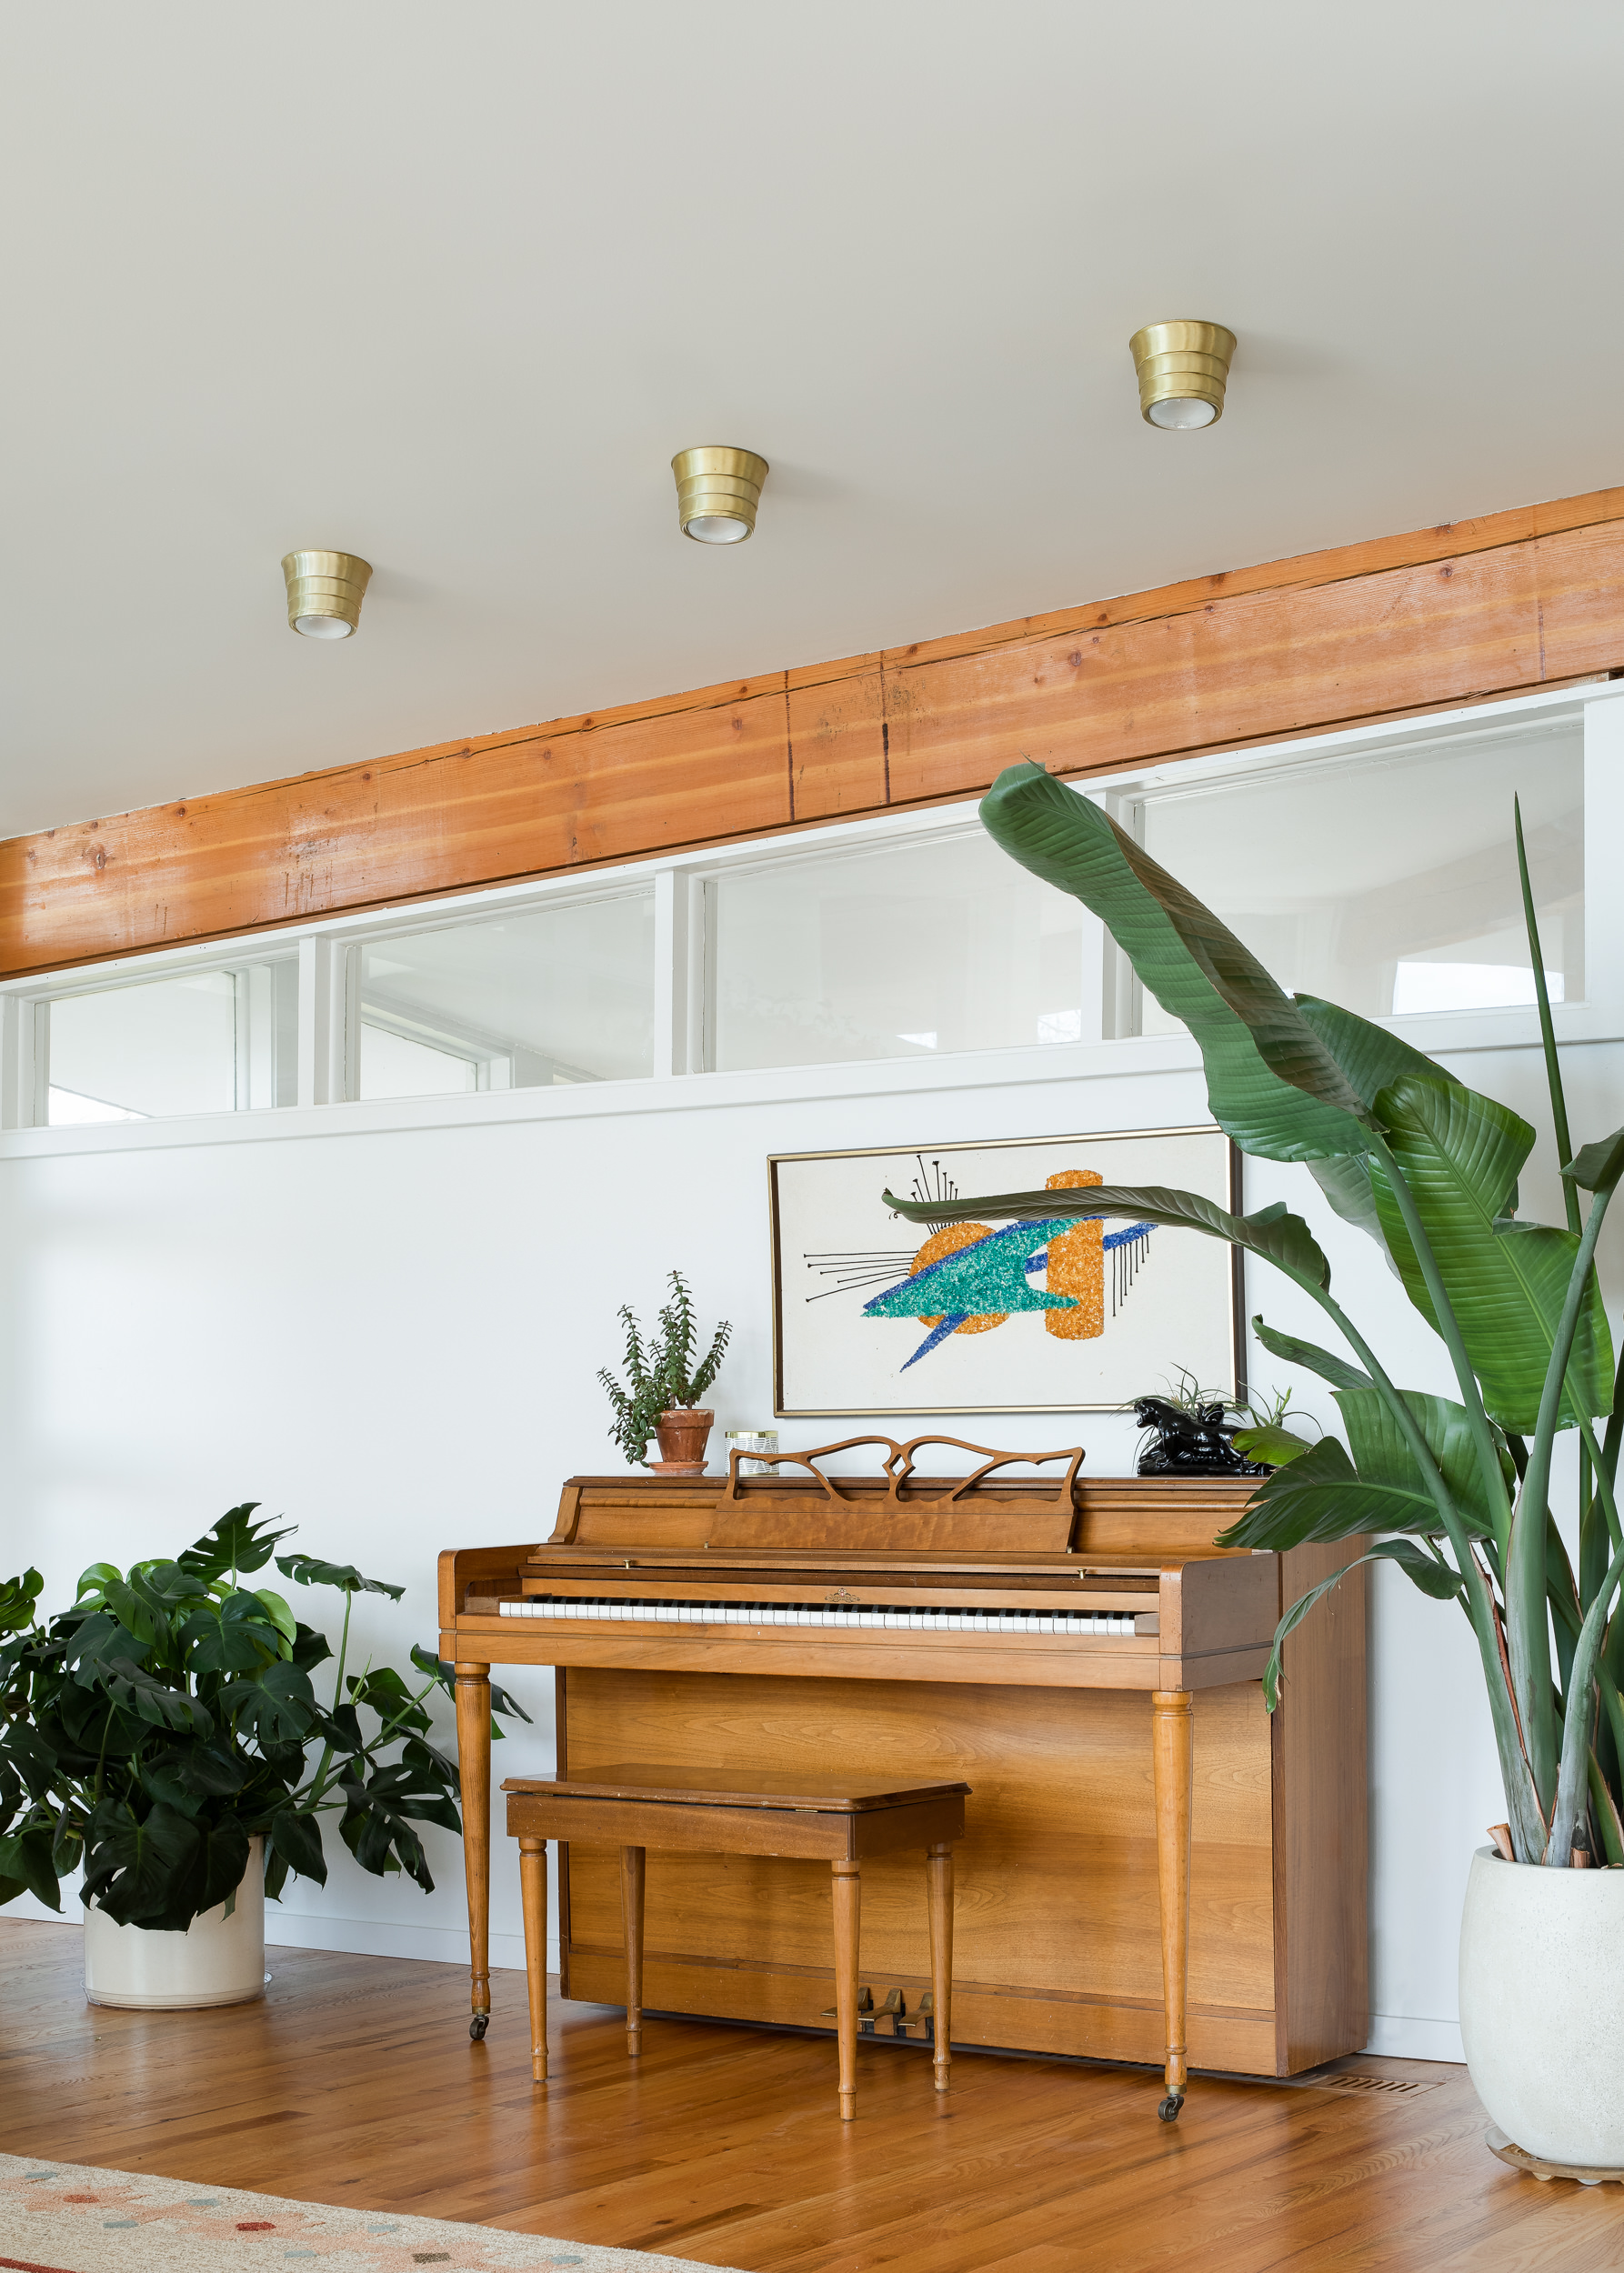 A piece of atomic gravel art hangs above a  Wurlitzer Spinnet piano  in the living room.